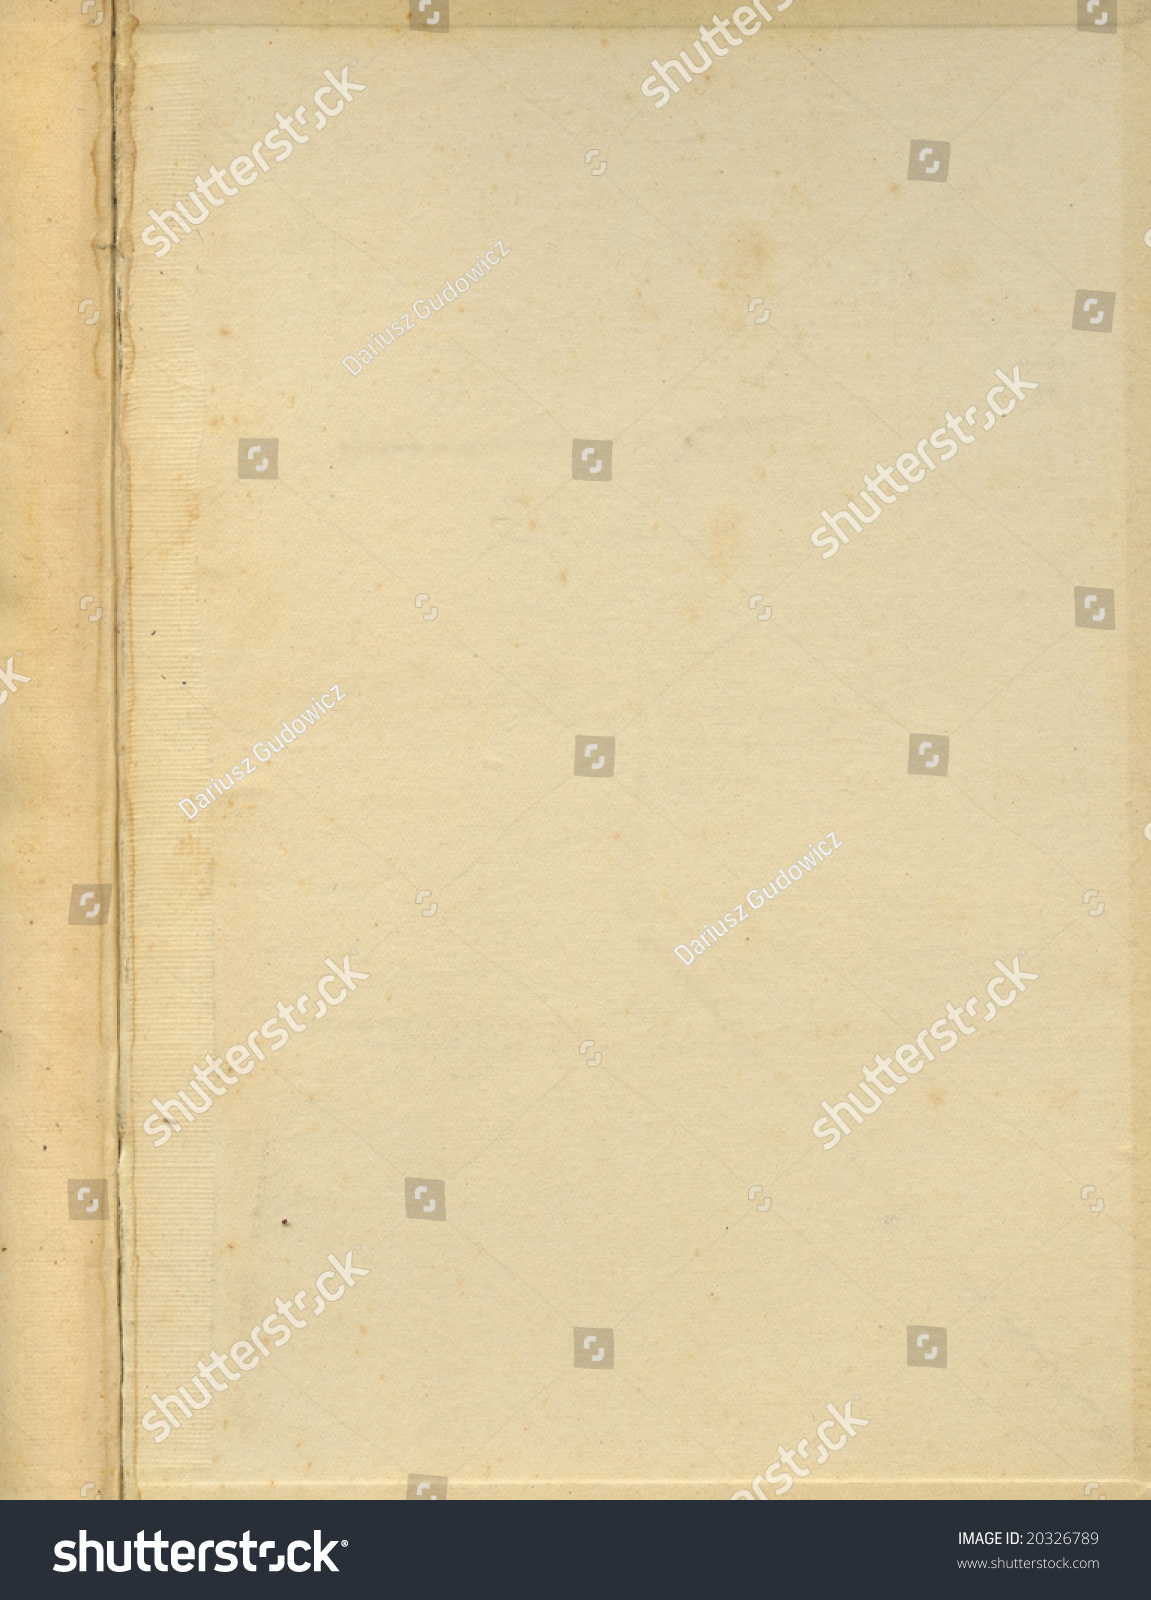 Old Book Cover Page ~ Old grunge book cover inside page stock photo